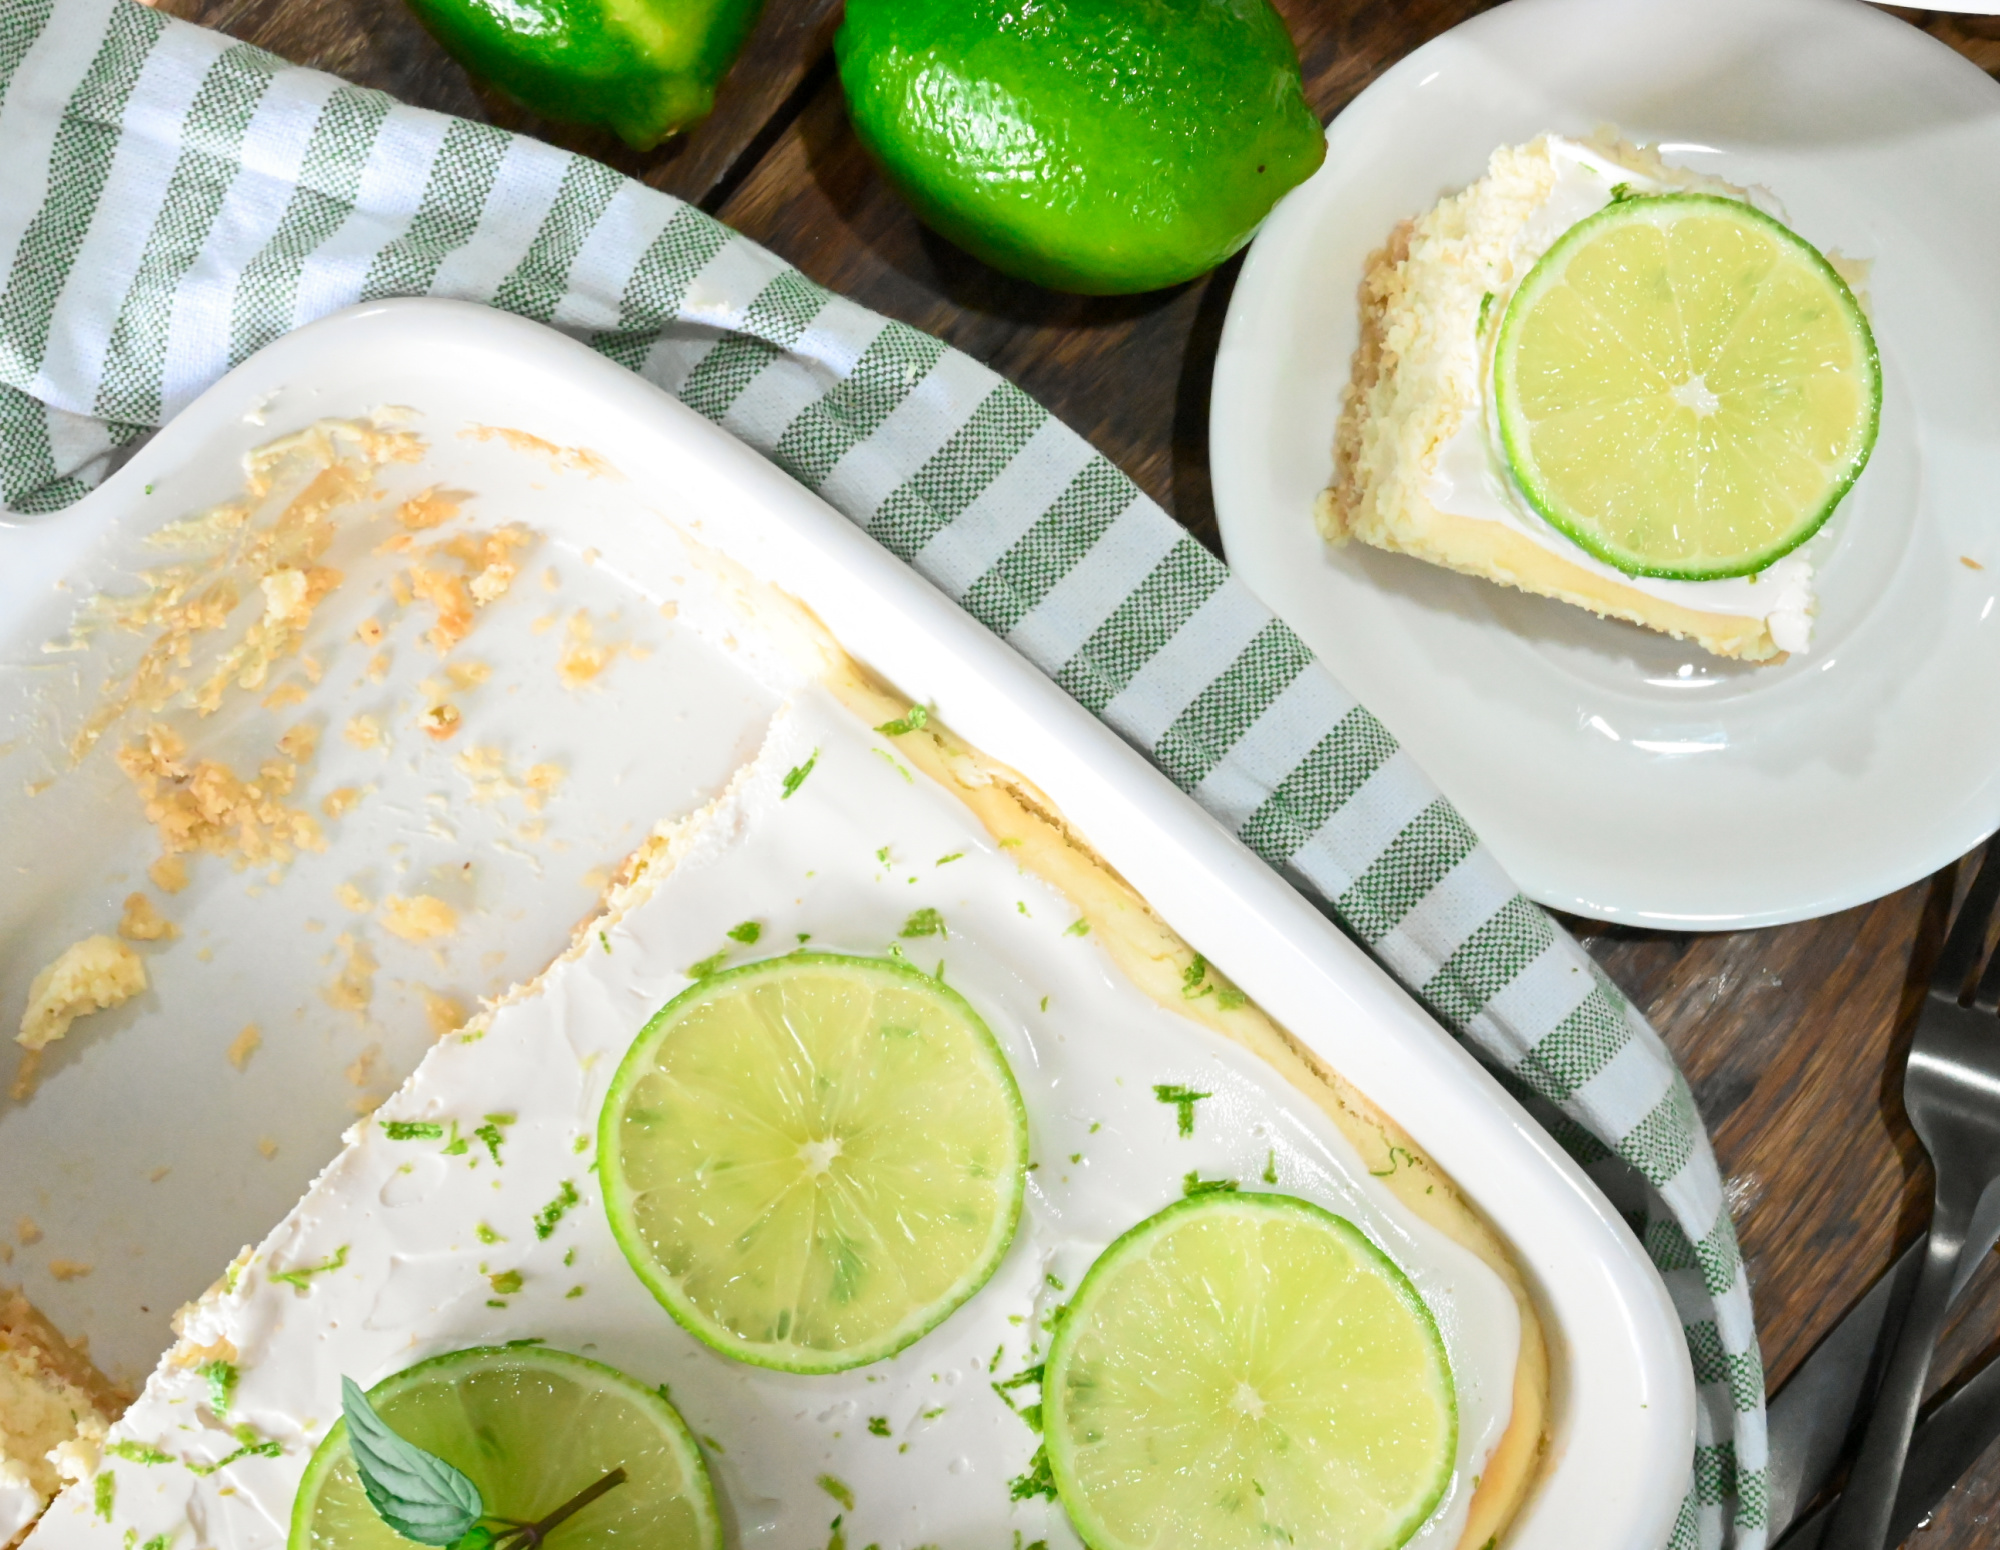 keto lime cheesecake bars sliced and served on wooden board the cheesecake has slices of lime on the top